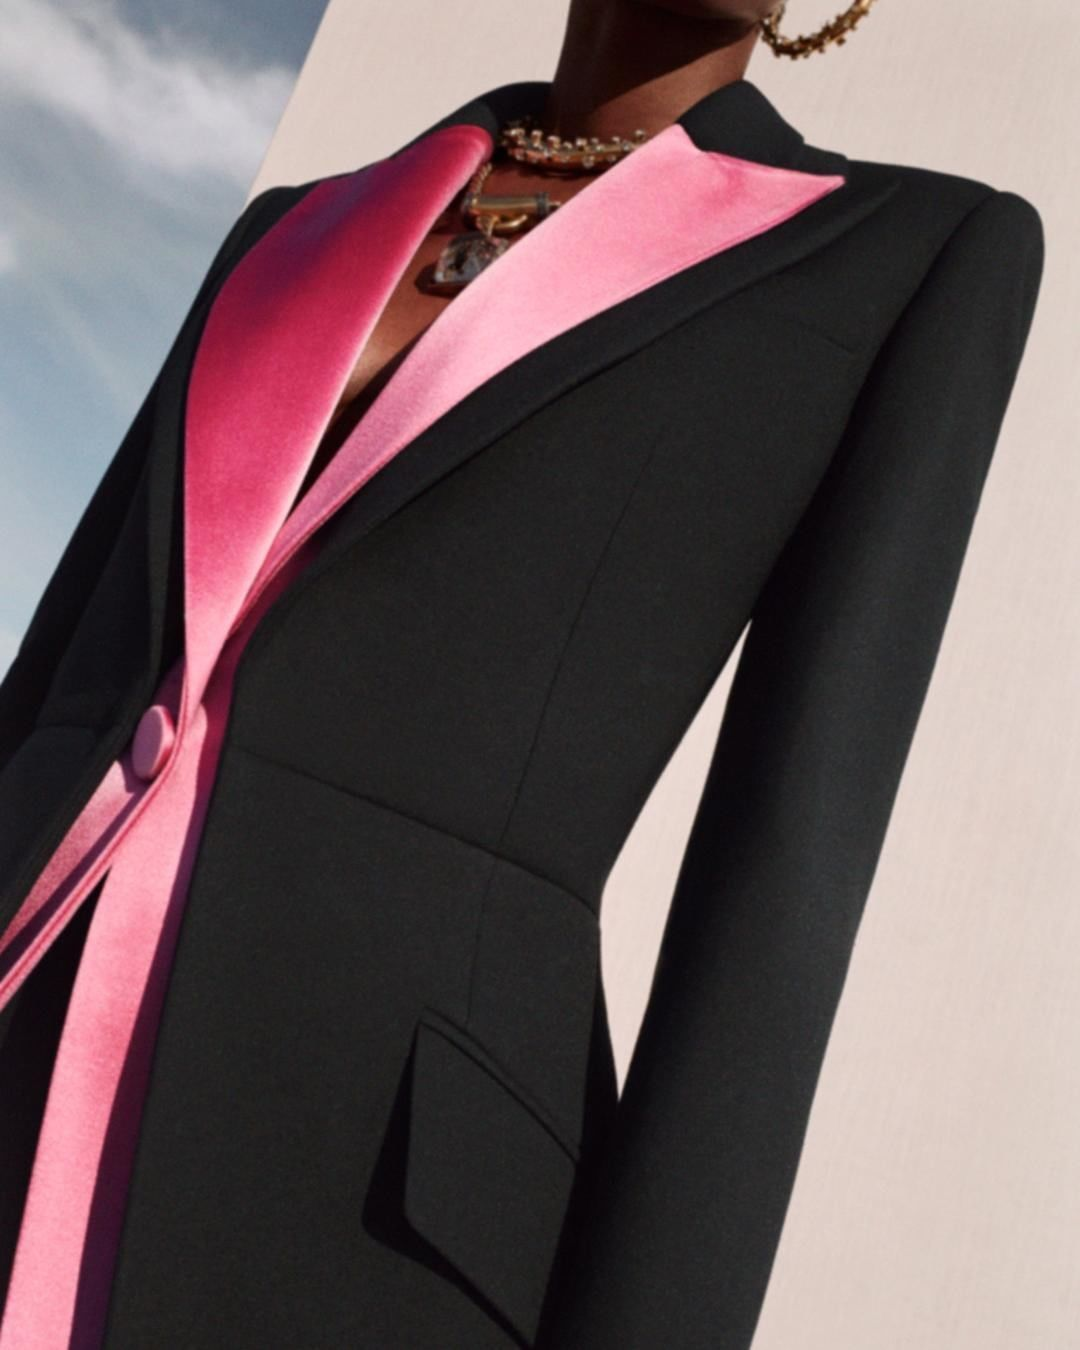 """Alexander McQueen on Instagram: """"A single-breasted black wool silk trompe l'oeil jacket with hibiscus pink duchess satin lapels.  From the Spring/Summer 2020 pre-…"""""""